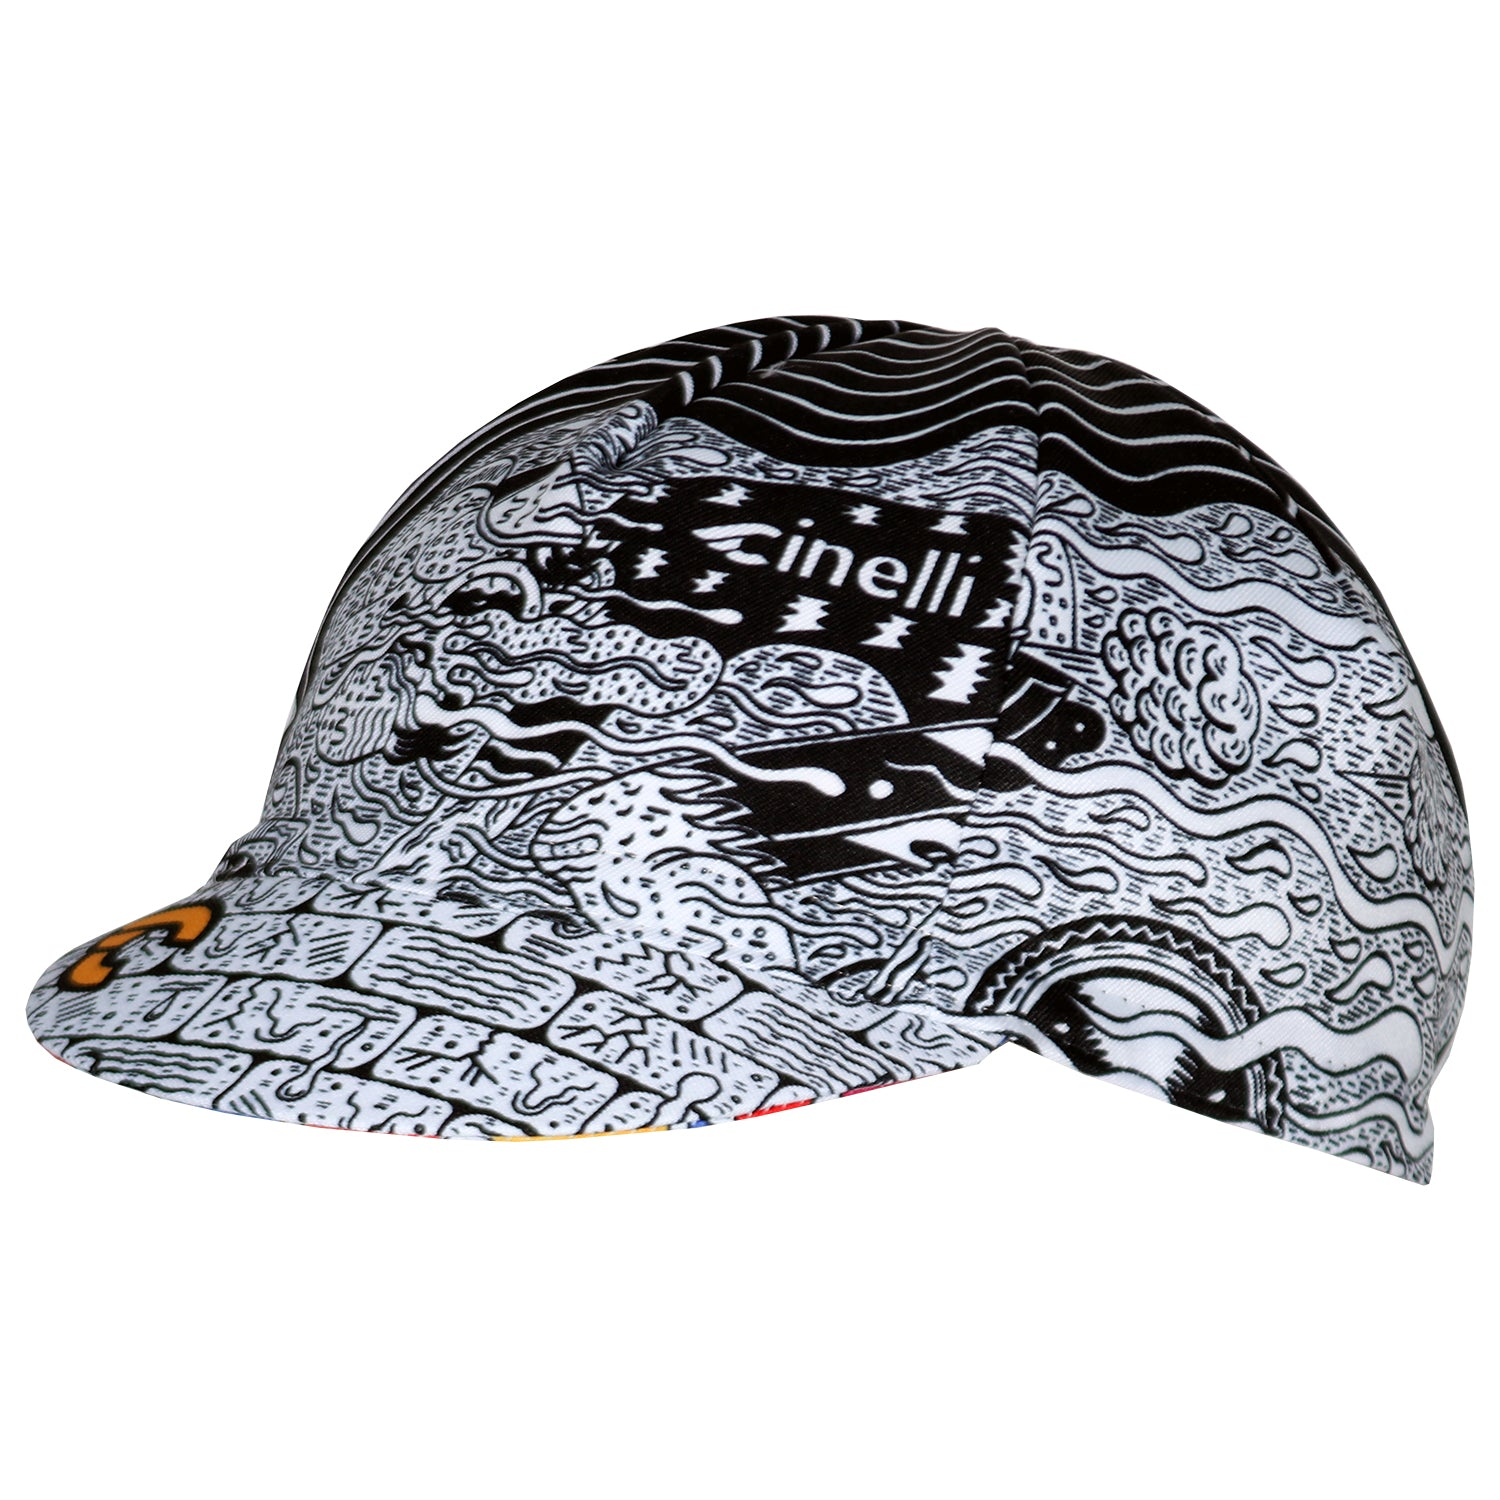 Cinelli Louie Cordero Lokobuko Cycling Cap